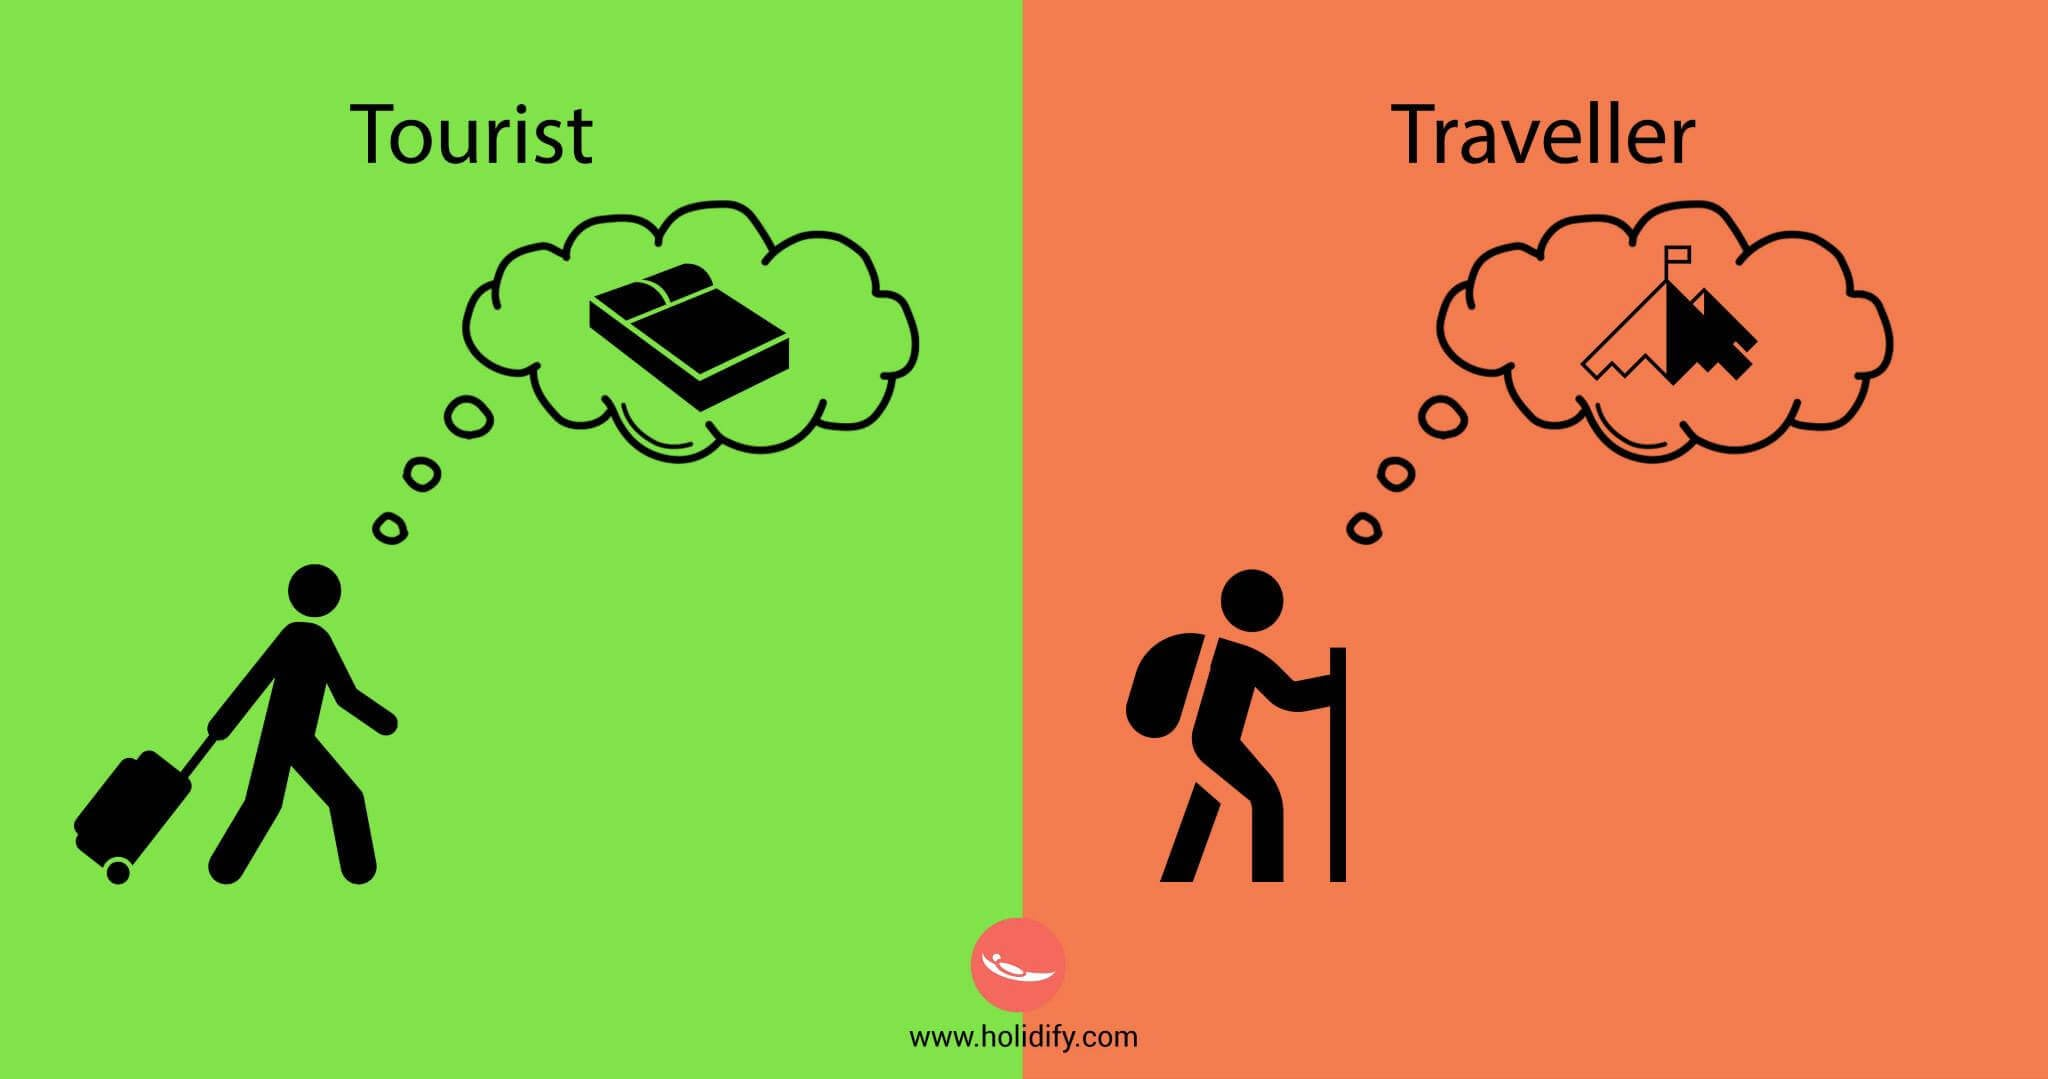 tourist-vs-traveller-freeyork-10